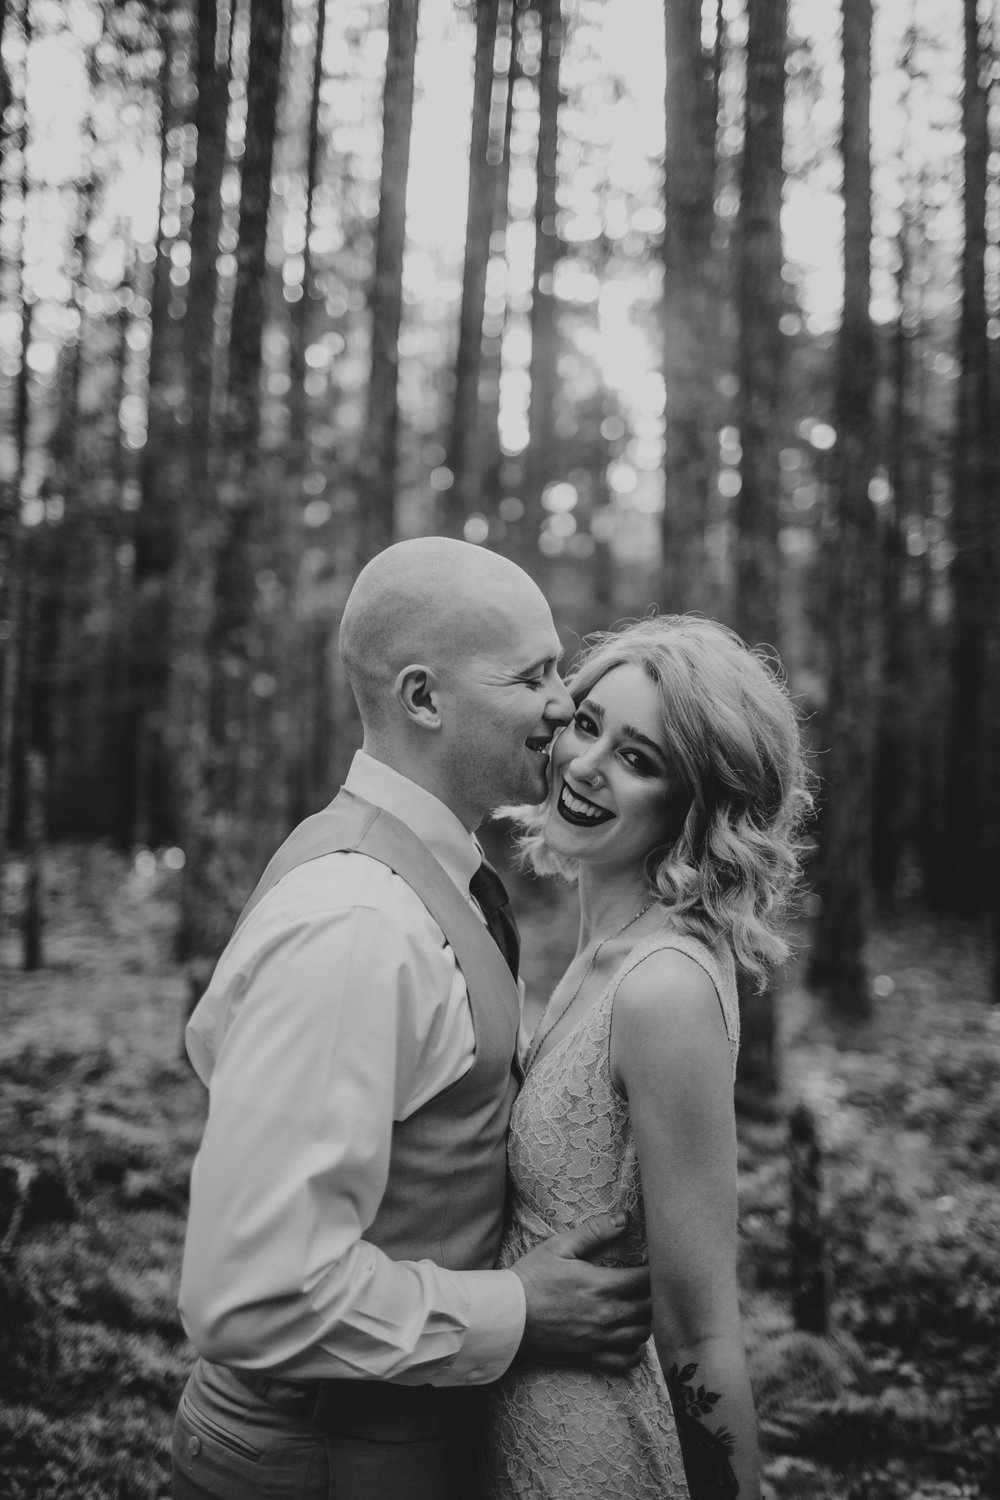 Port Angeles-PNW-Sequim-Portrait-wedding-elopement-photographer-kayladawnphoto-kayla dawn photography-olympic peninsula-portraiture34.jpg